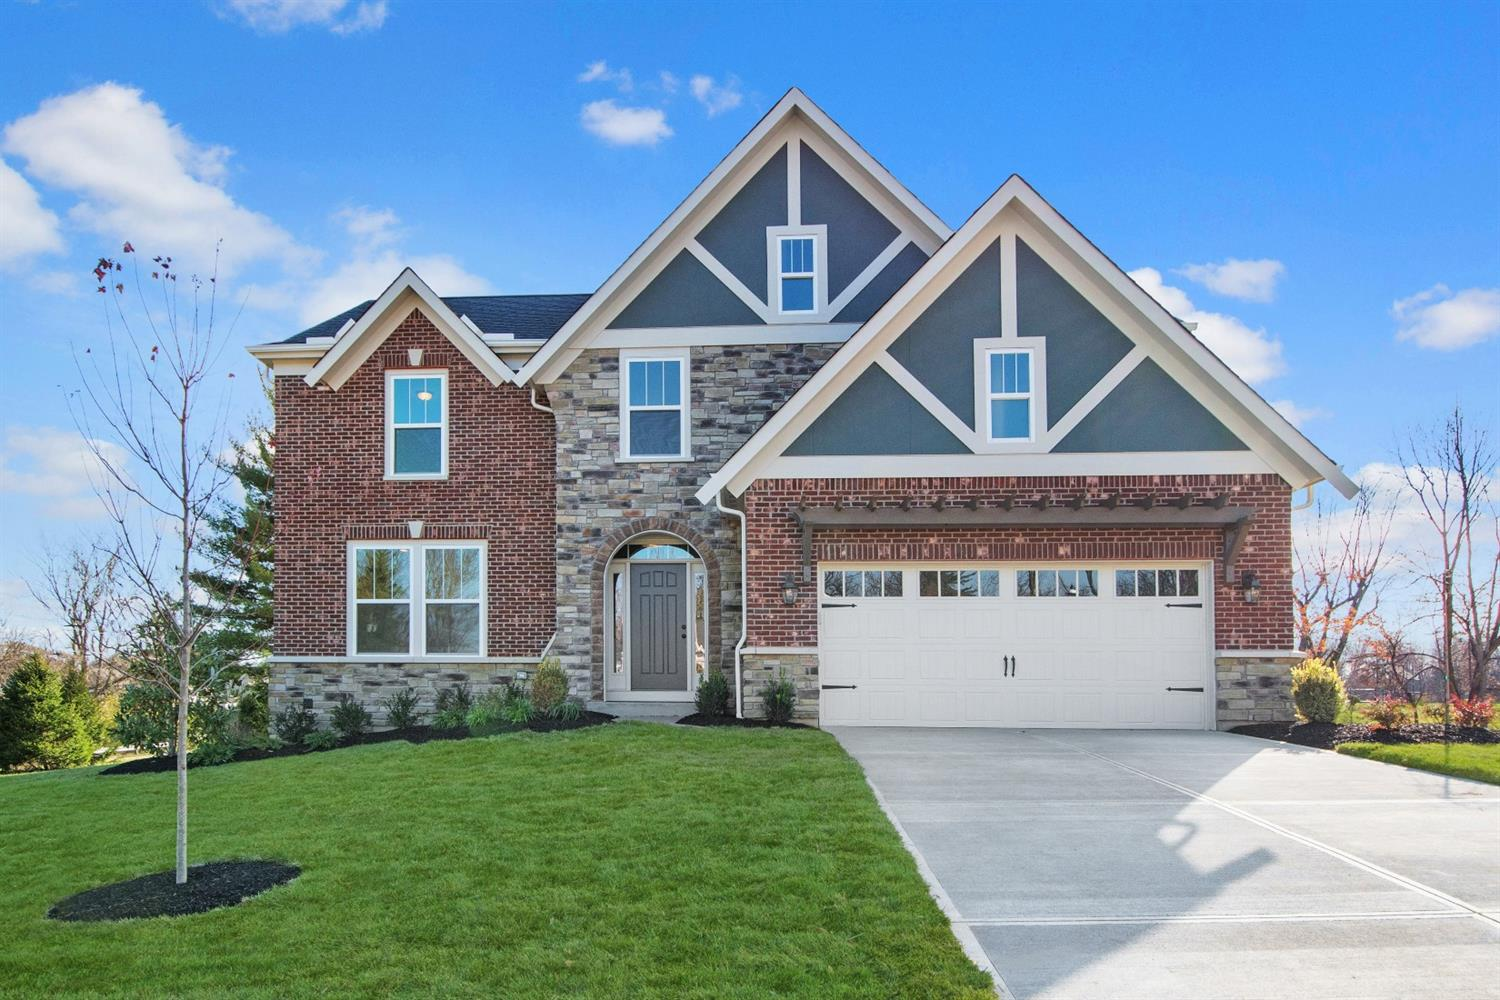 9995 Southport Ln Symmes Twp., OH